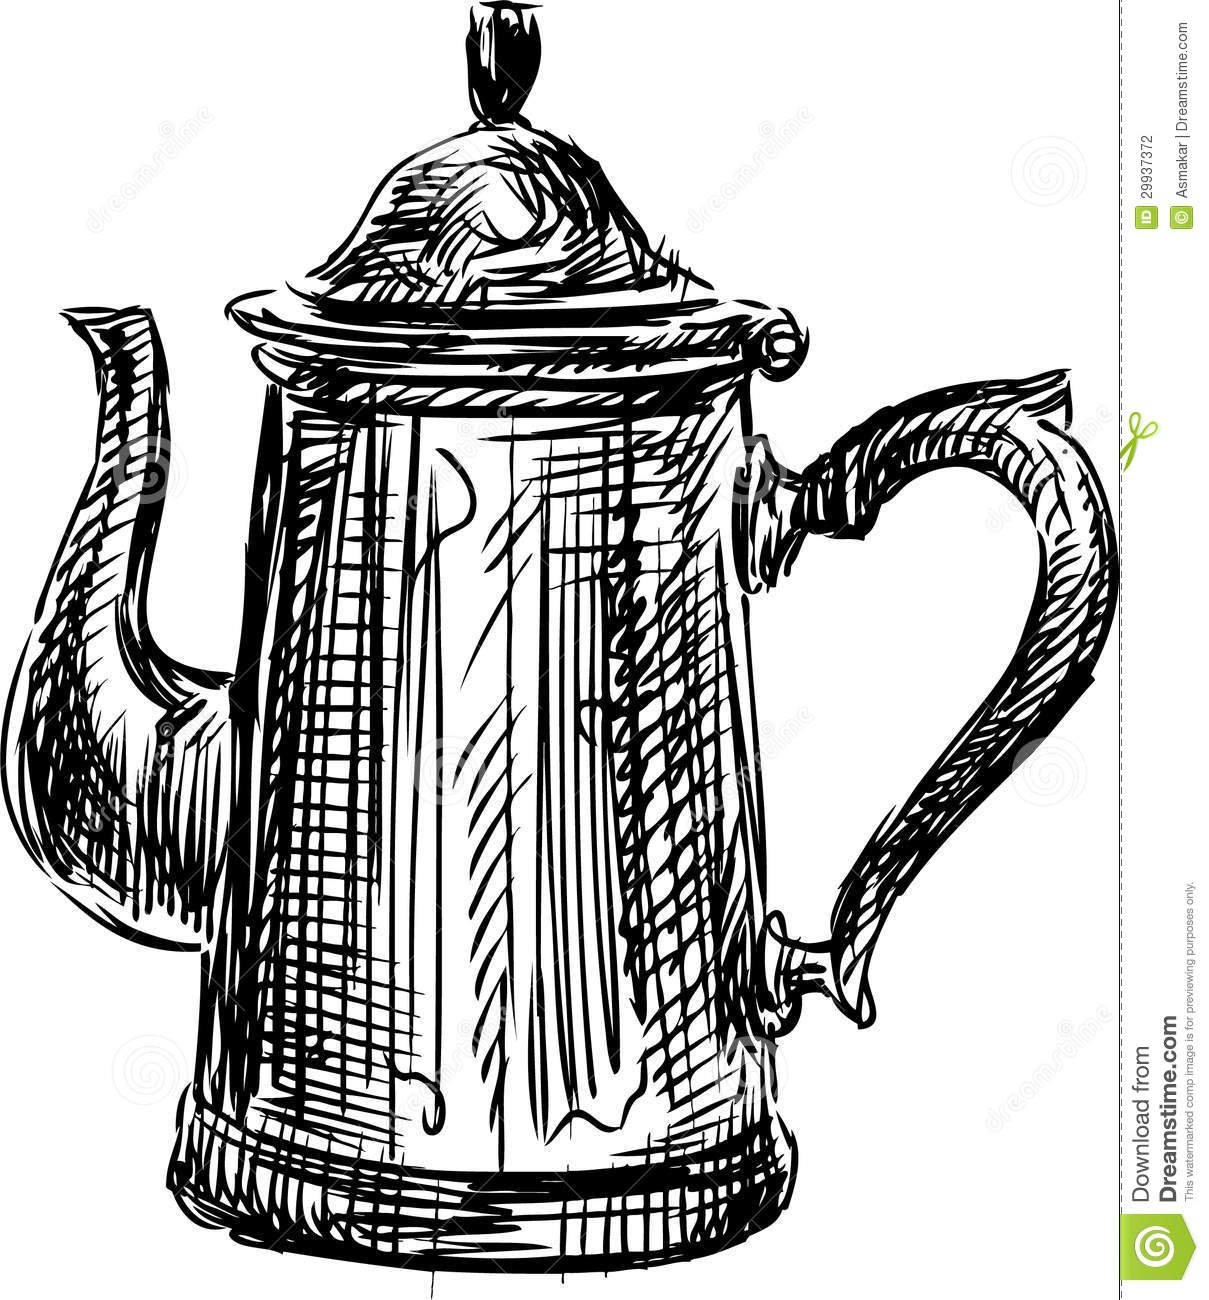 Dream Kitchen Design Drawing: Coffee Pot Stock Photo. Image Of Beverage, Sketch